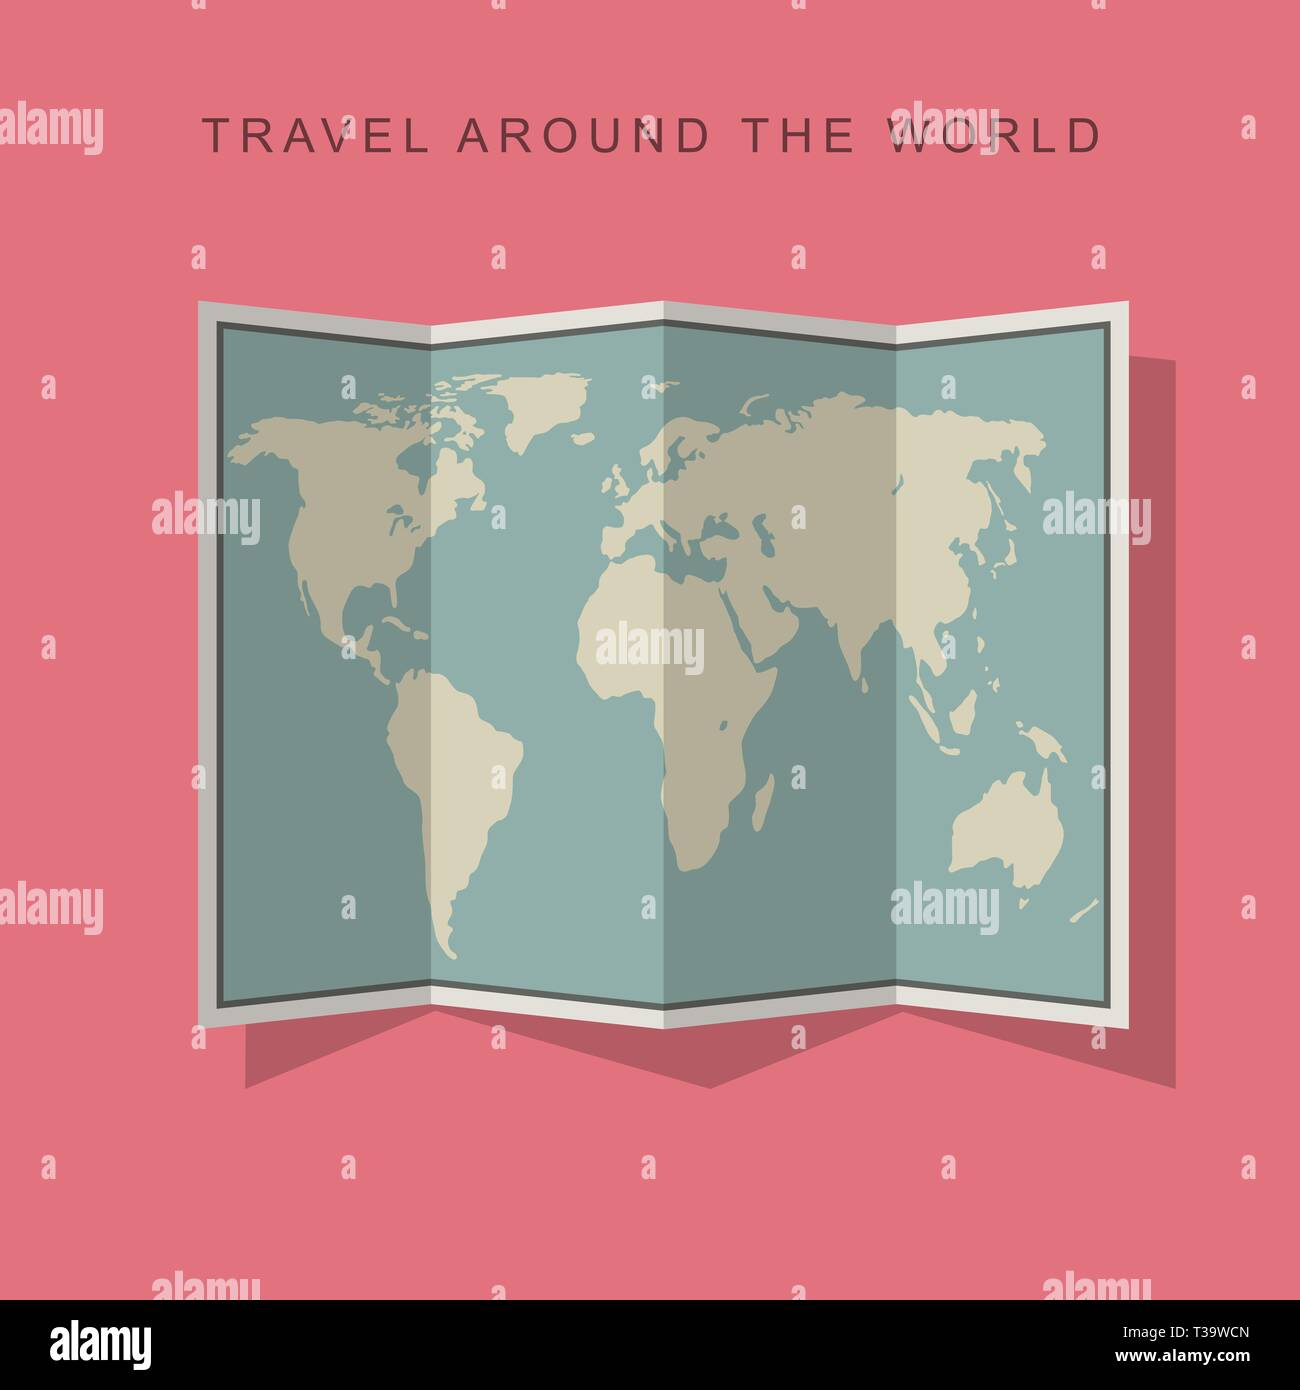 Folded paper world map with shadow on pink background. Flat illustration of map. Stock Vector